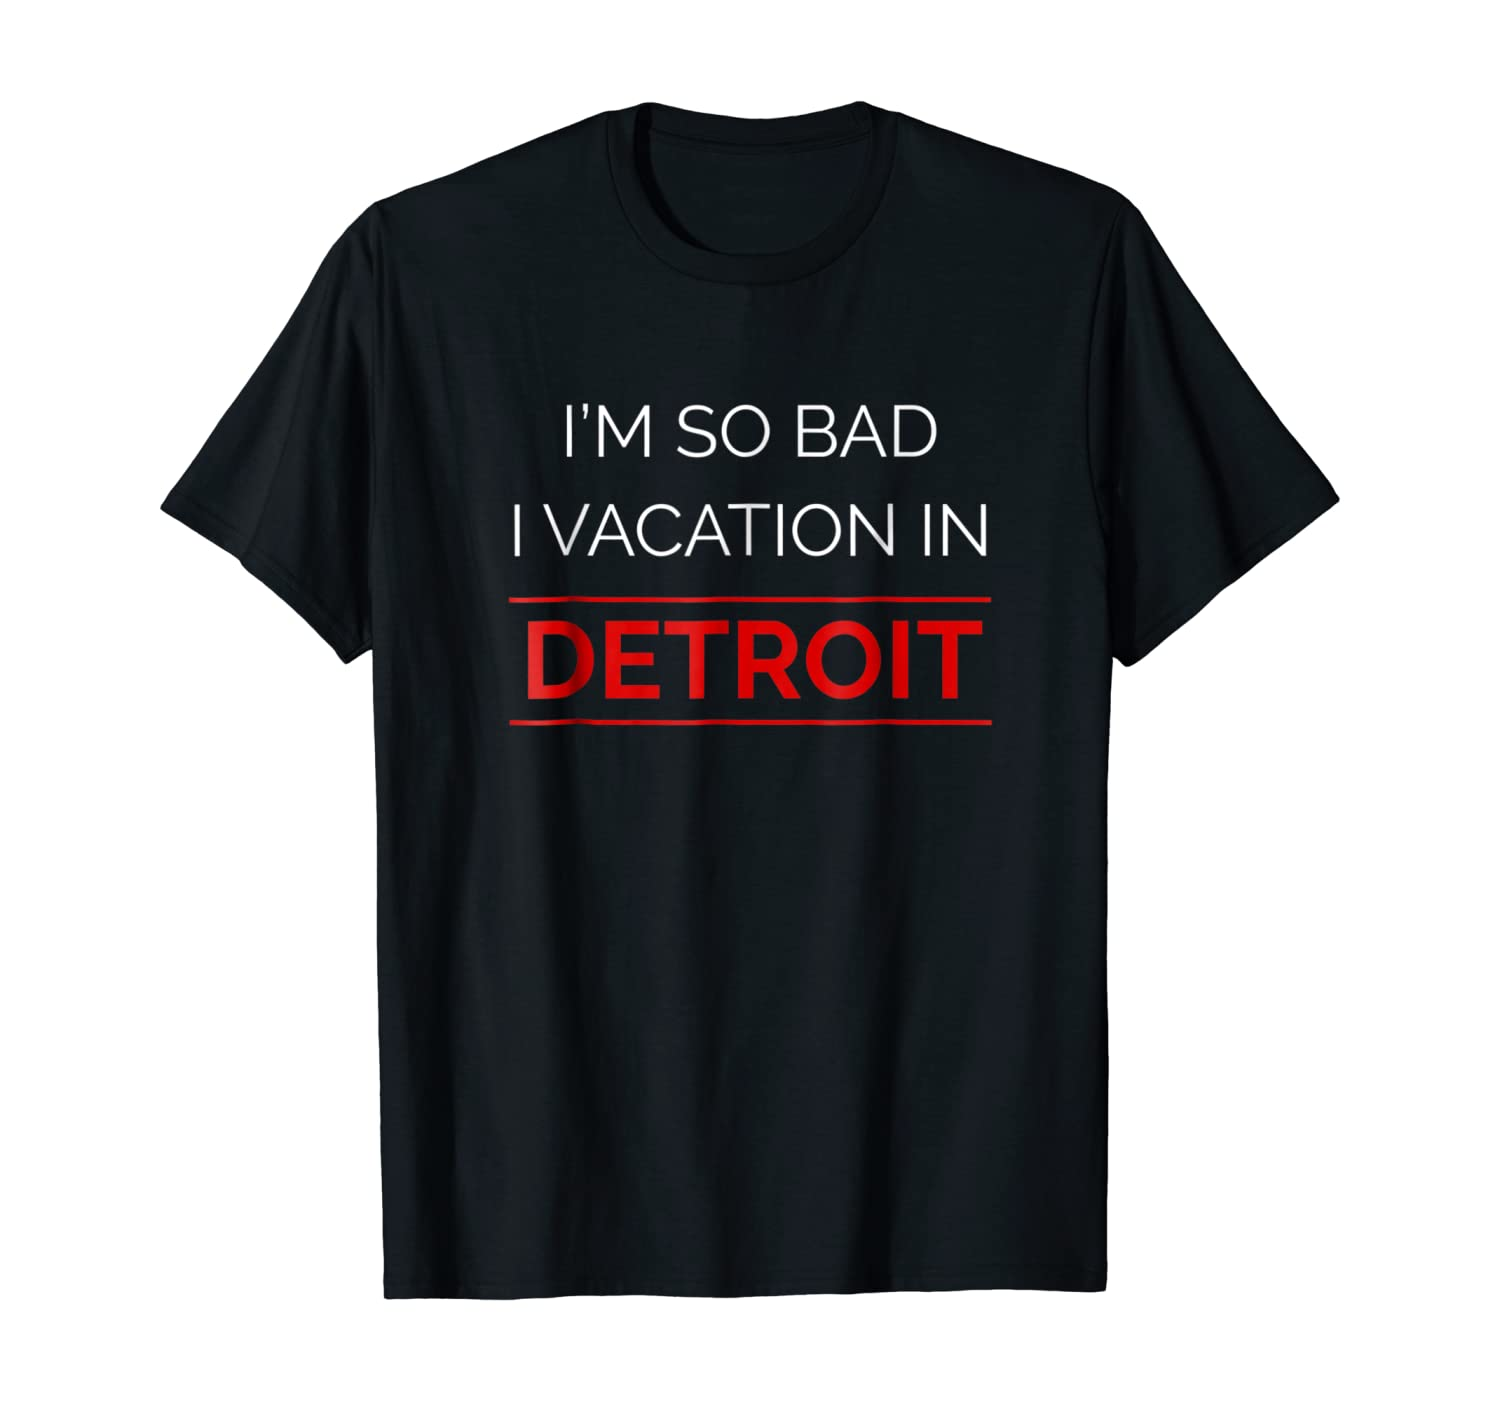 I'm So Bad I Vacation in Detroit Humorous Funny T-Shirt